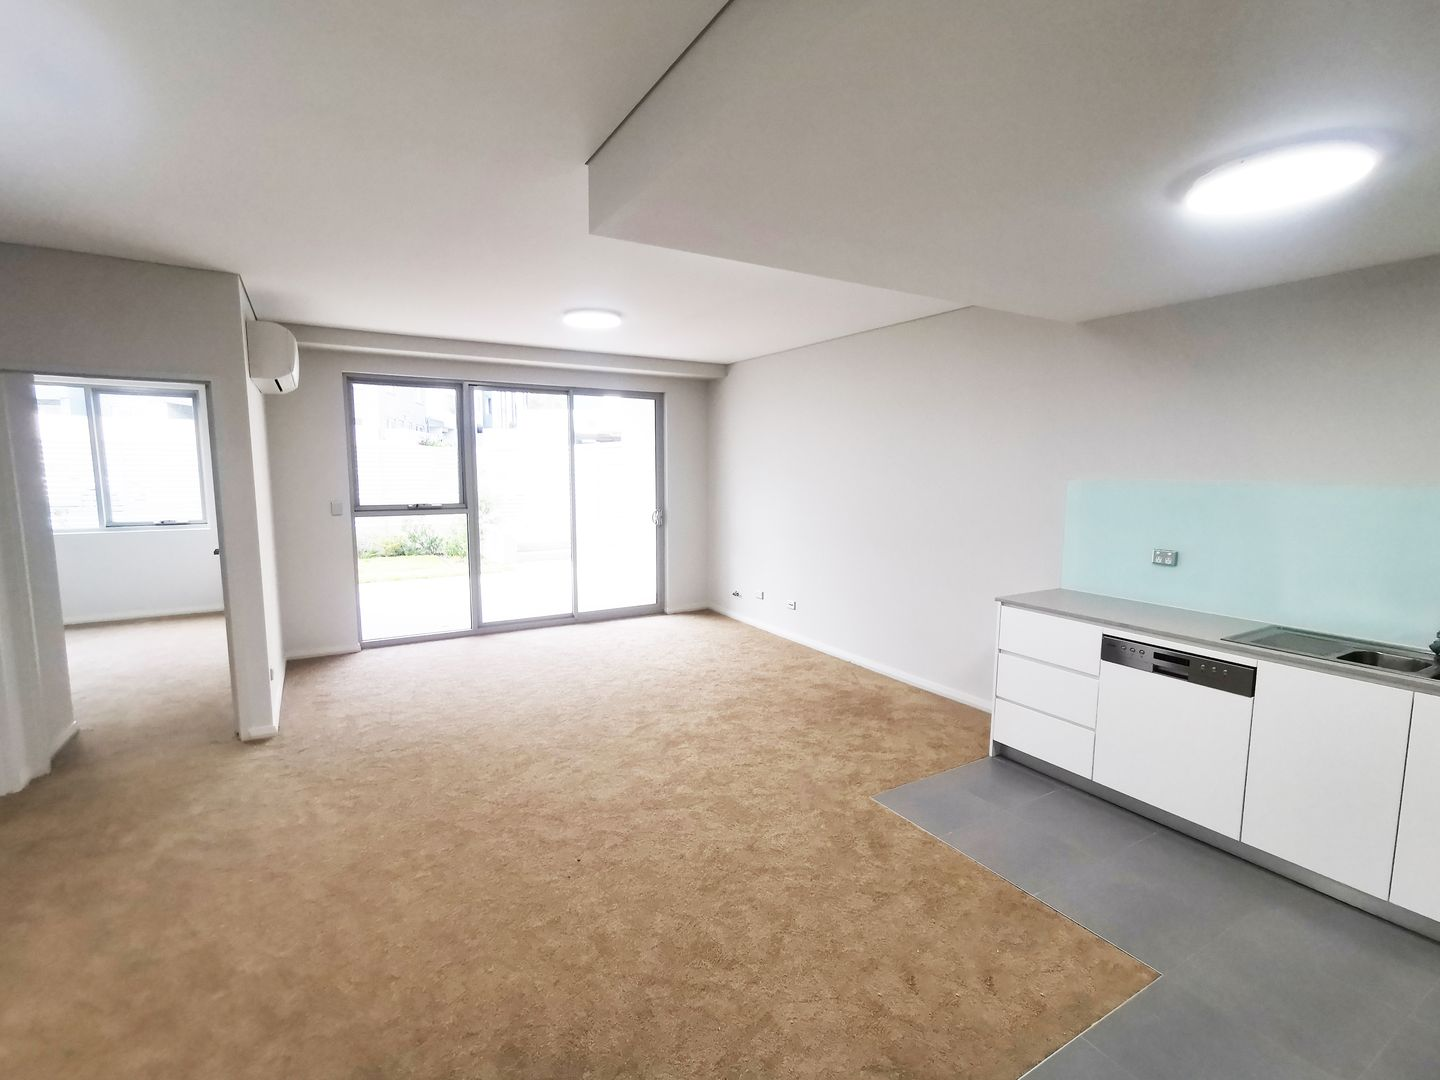 828 WINDSOR RD, Rouse Hill NSW 2155, Image 1